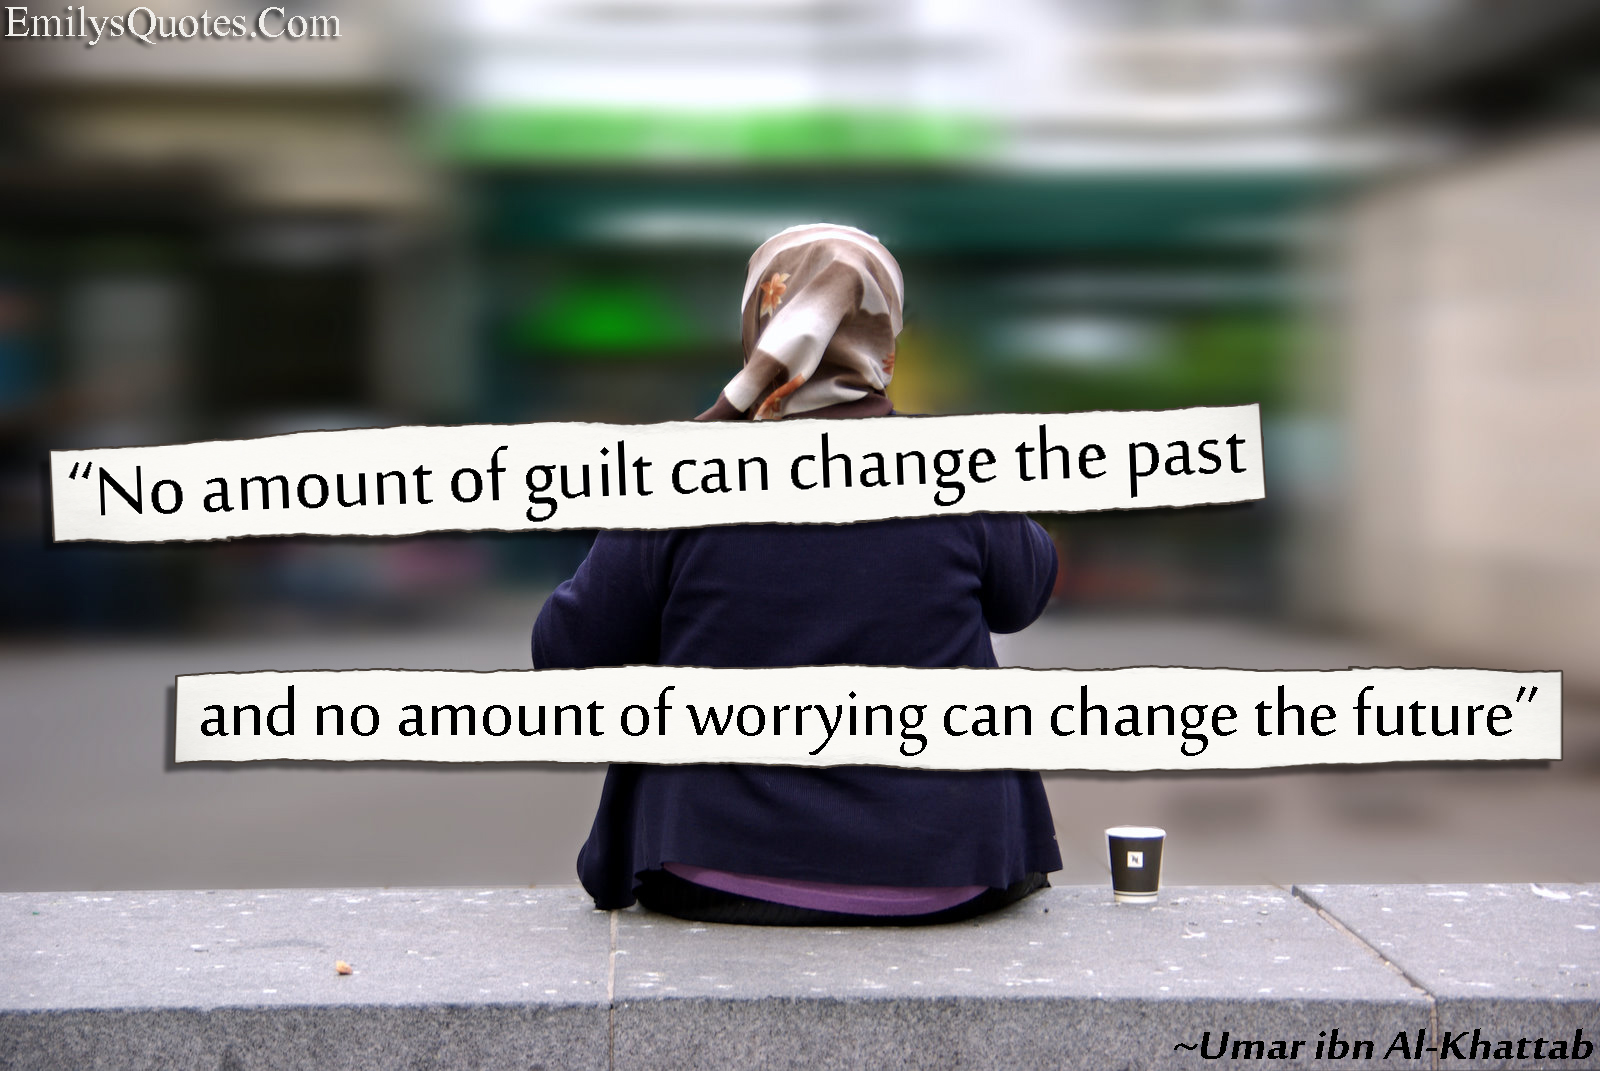 No amount of guilt can change the past and no amount of